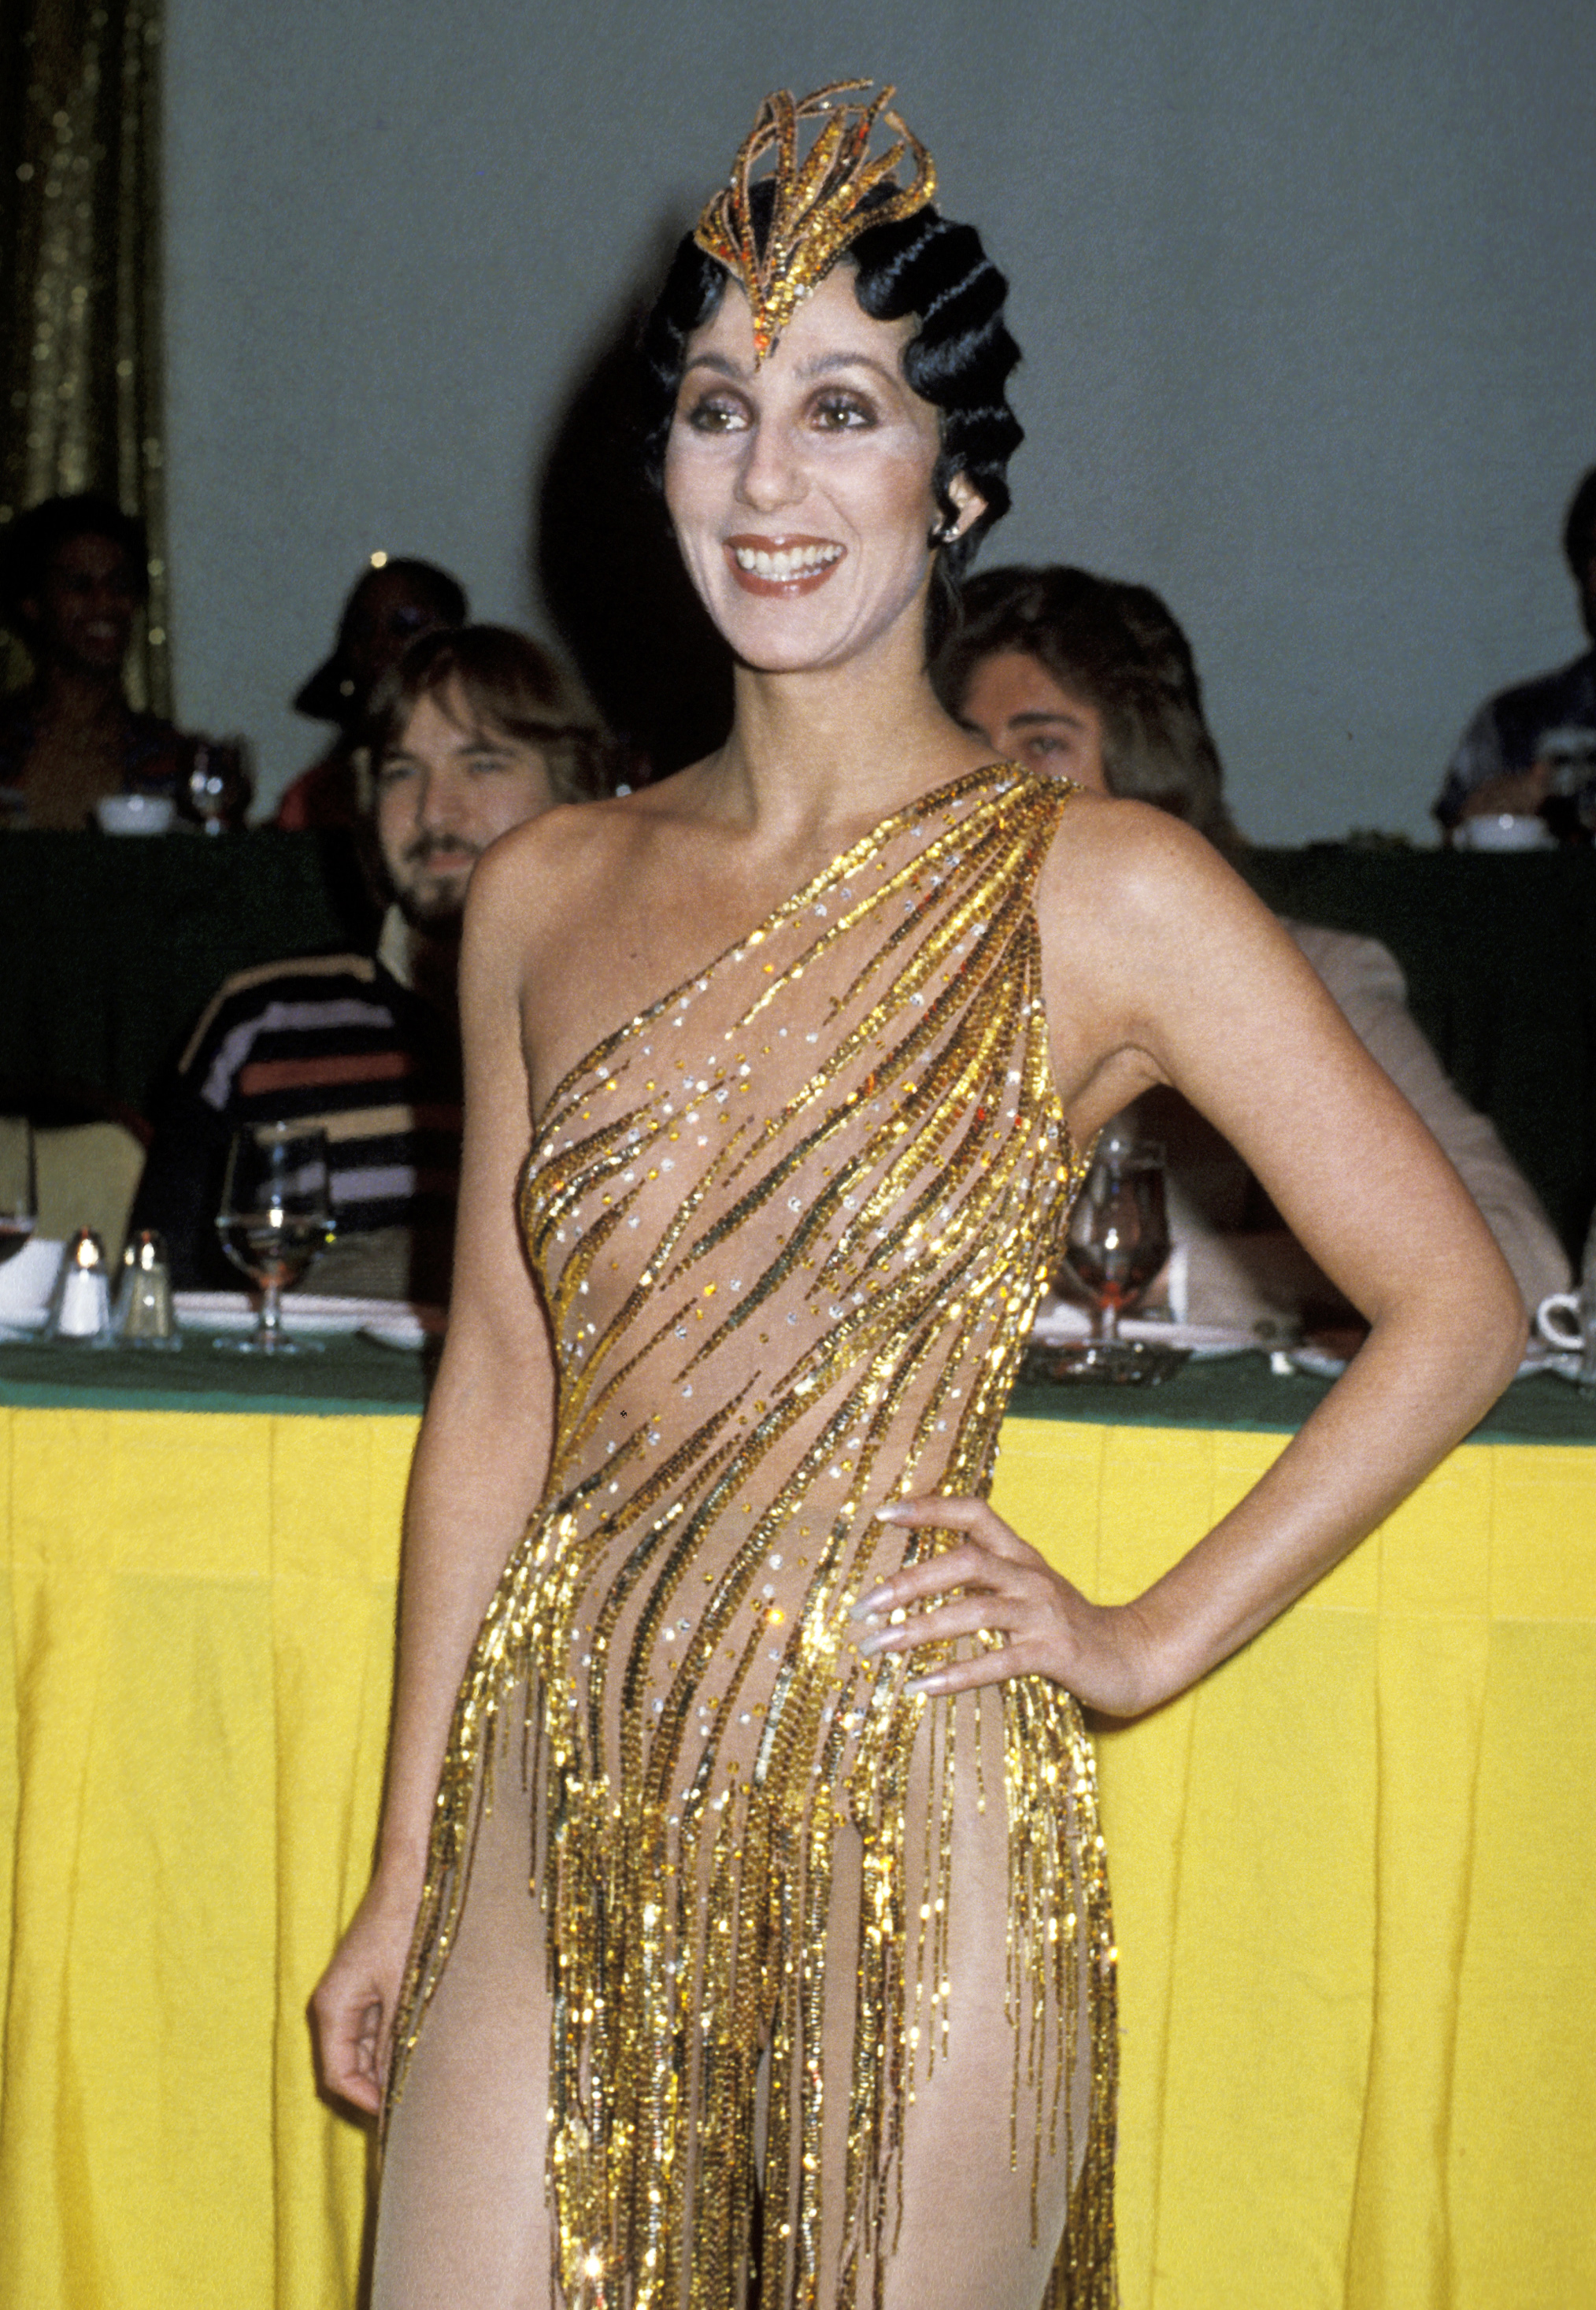 Cher during the 1978 Disco Convention Banquet in New York City on Feb. 28, 1979.